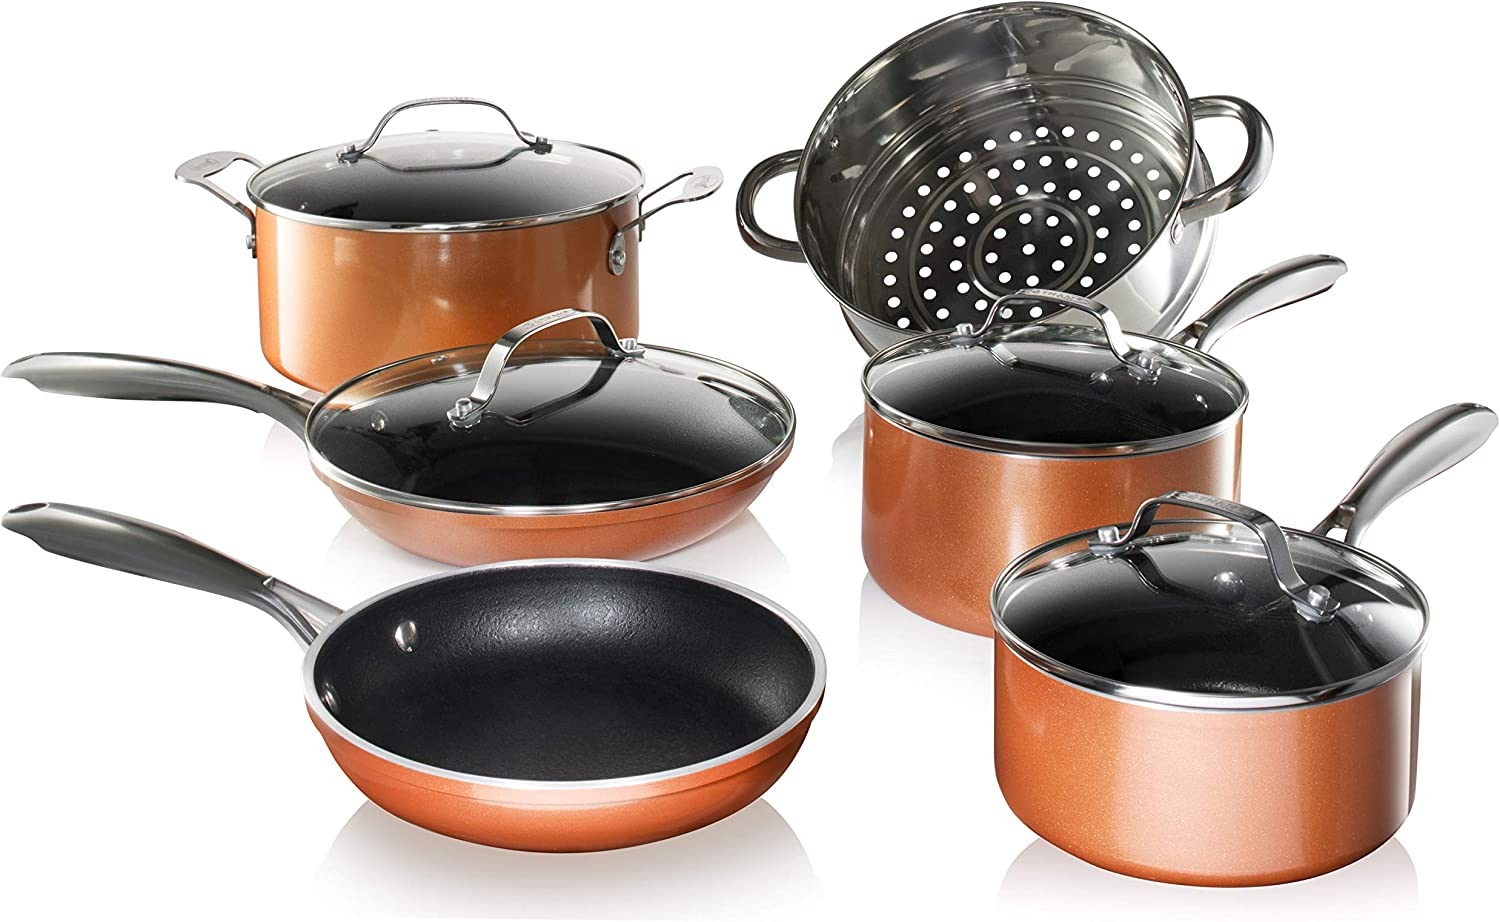 Gotham Steel Nonstick Pots and Pans 10 Piece Copper Cast Cookware Set with Ultra Nonstick PFOA FREE Coating–New for 2020, Includes Frying Pans, Saucepans, Stock Pots, Steamer Insert, Dishwasher Safe